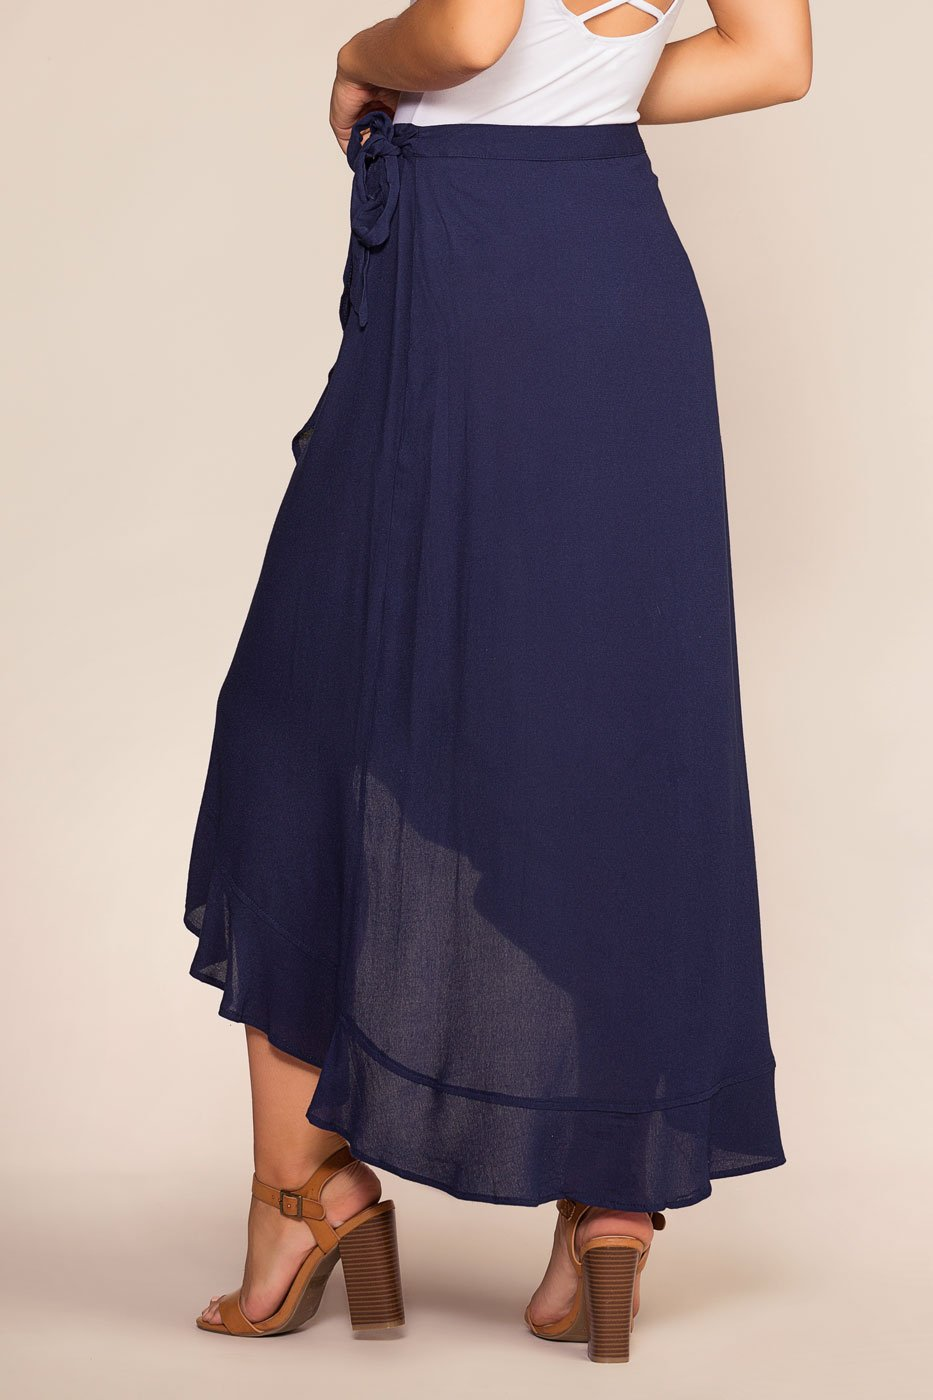 Skirts - Lagoon Wrap Maxi Skirt - Navy